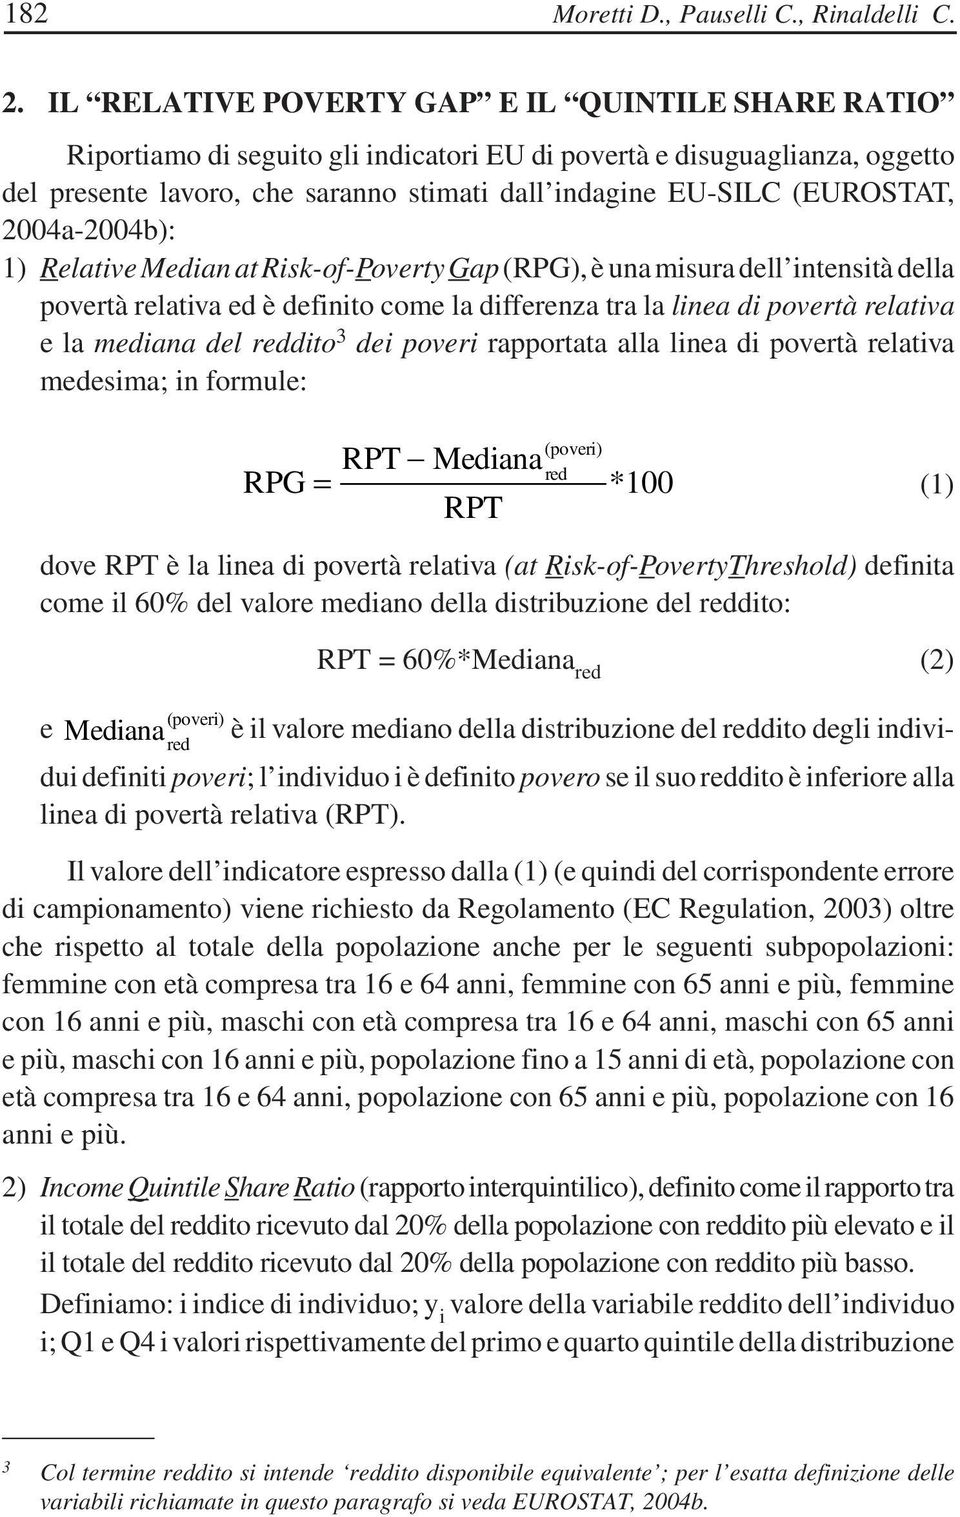 (EUROSTAT, 2004a-2004b): 1) Relative Median at Risk-of-Poverty Gap (RPG), è una misura dell intensità della povertà relativa ed è definito come la differenza tra la linea di povertà relativa e la